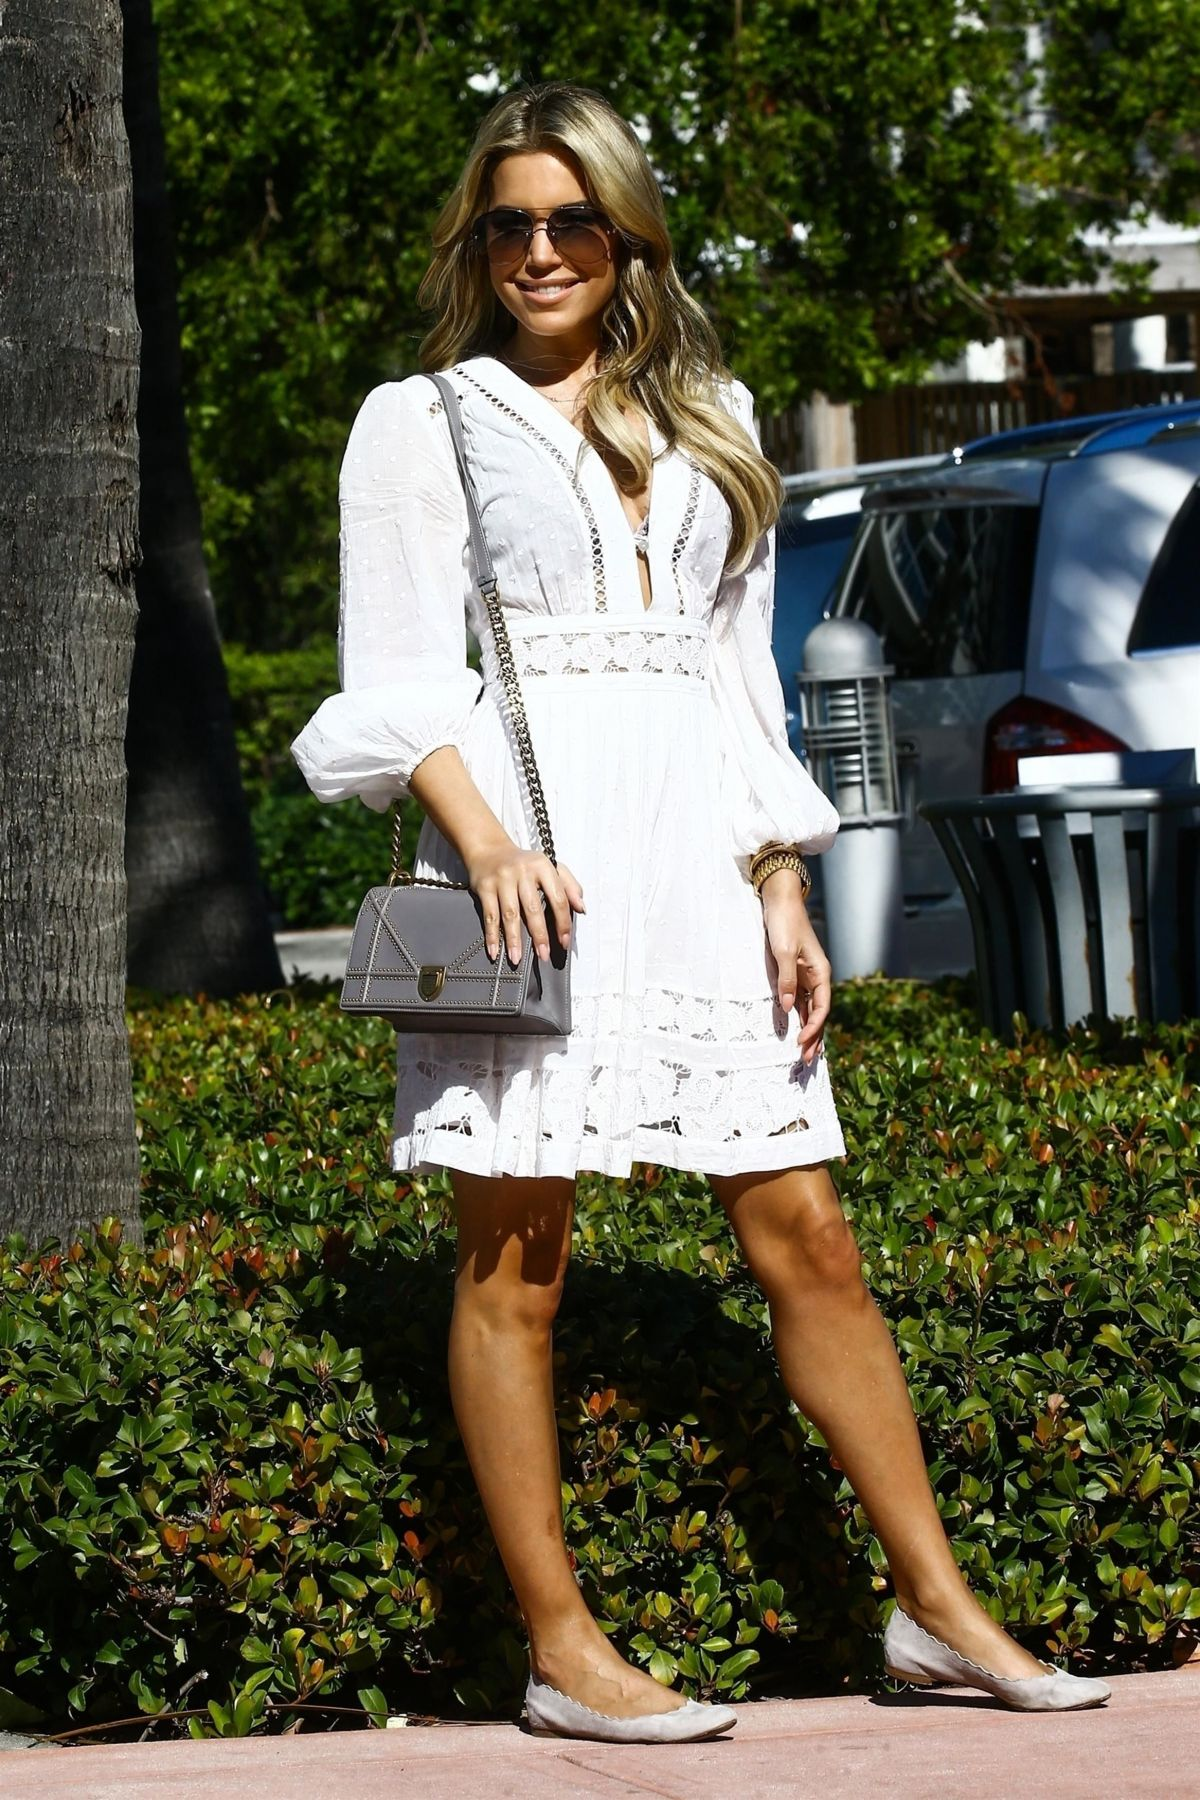 905aa9f479 Sylvie Meis Steps out in a white summer dress in Miami - Celebzz